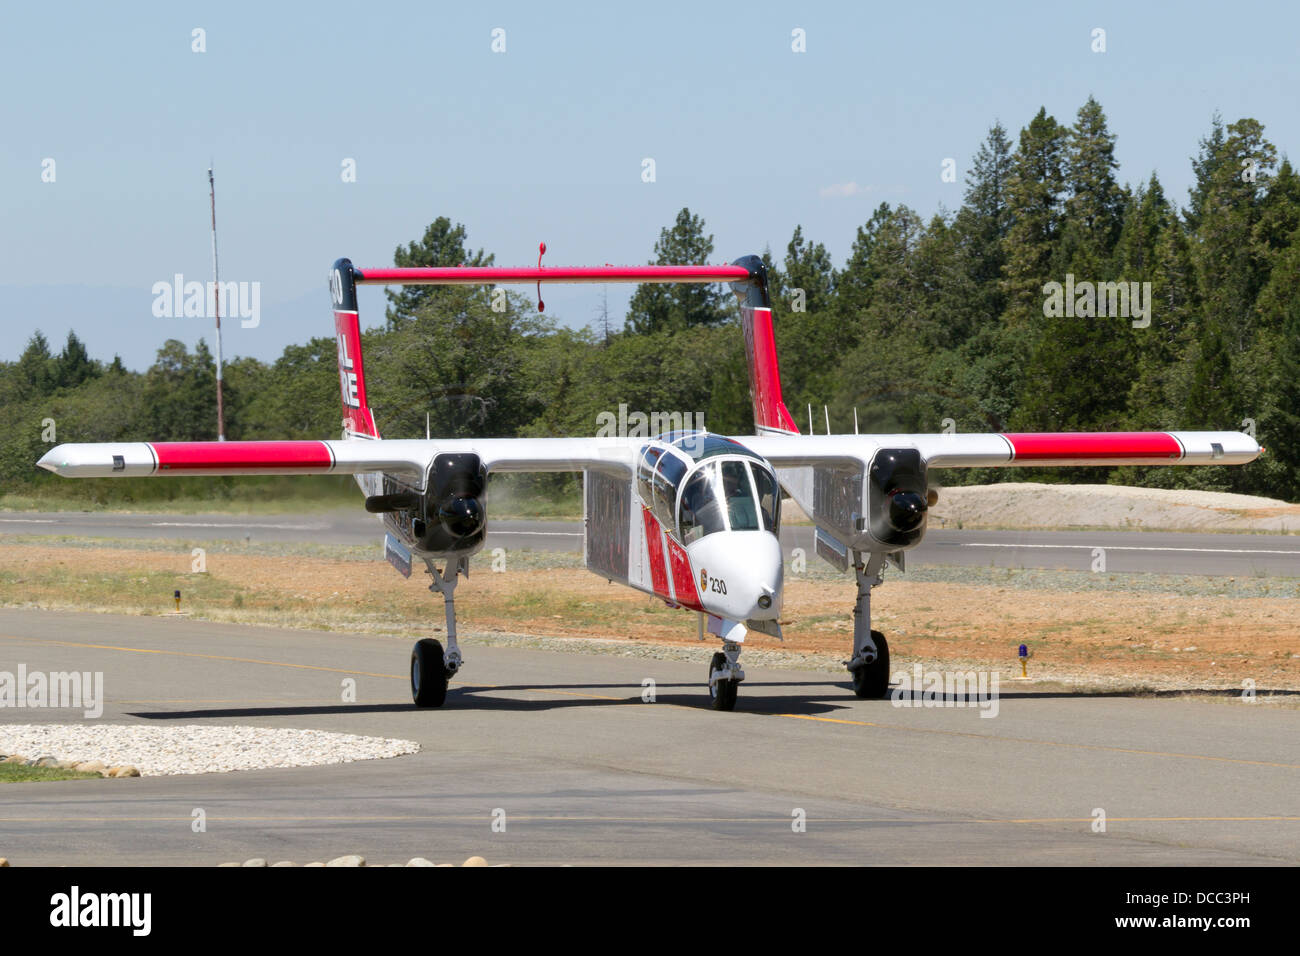 Cal Fire OV-10 Bronco taxis at the Nevada County Air Attack Base prior to a firefighting mission. - Stock Image